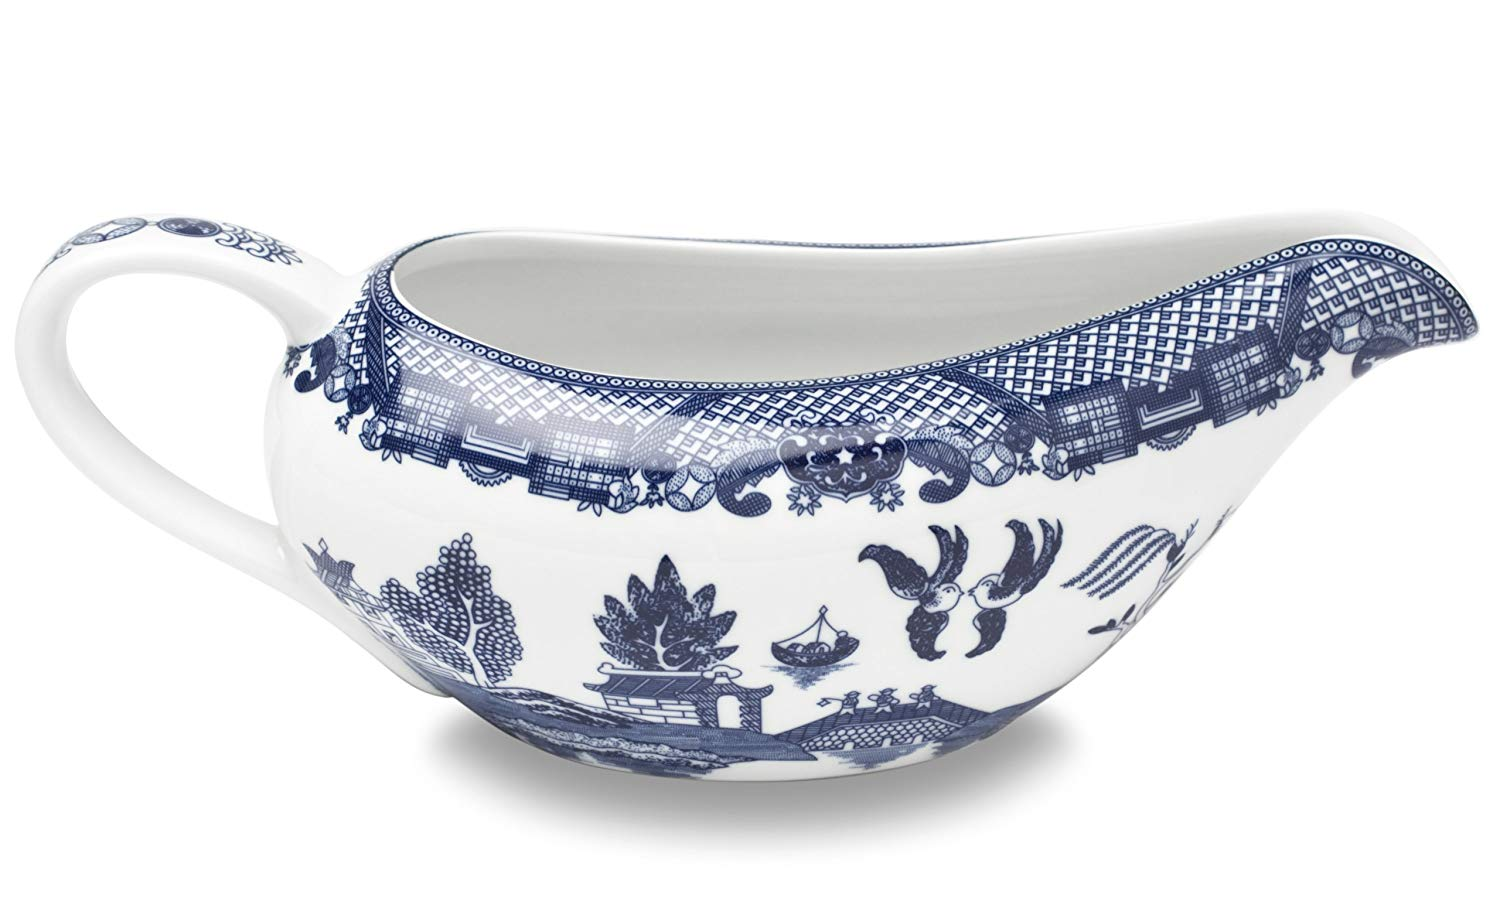 HIC Harold Import Co. YK-337 HIC Blue Willow Gravy Boat